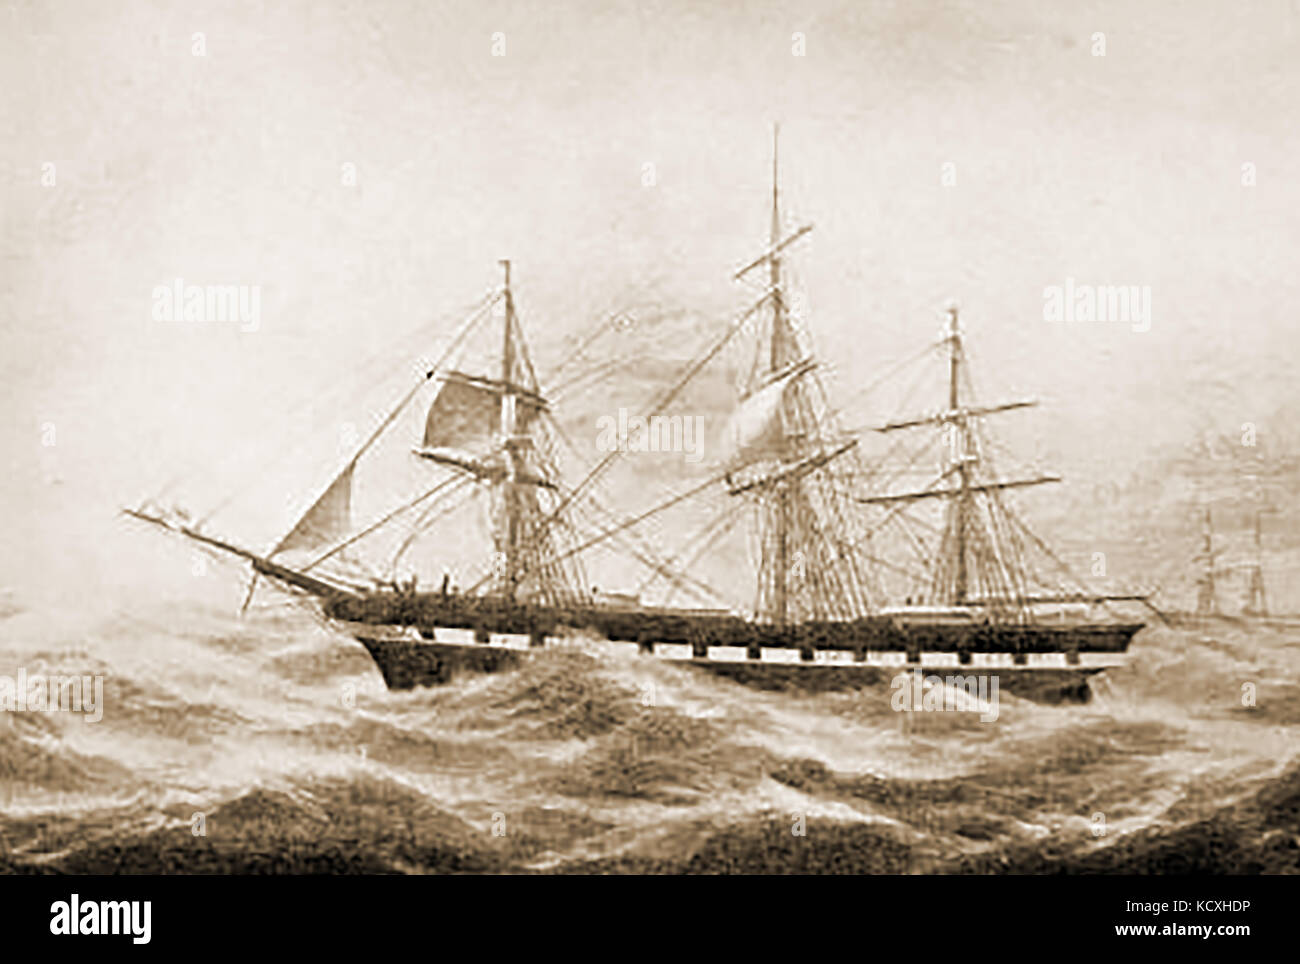 The US ship CASTILLIAN built at Newbury Port USA in 1849 by John Currier Stock Photo